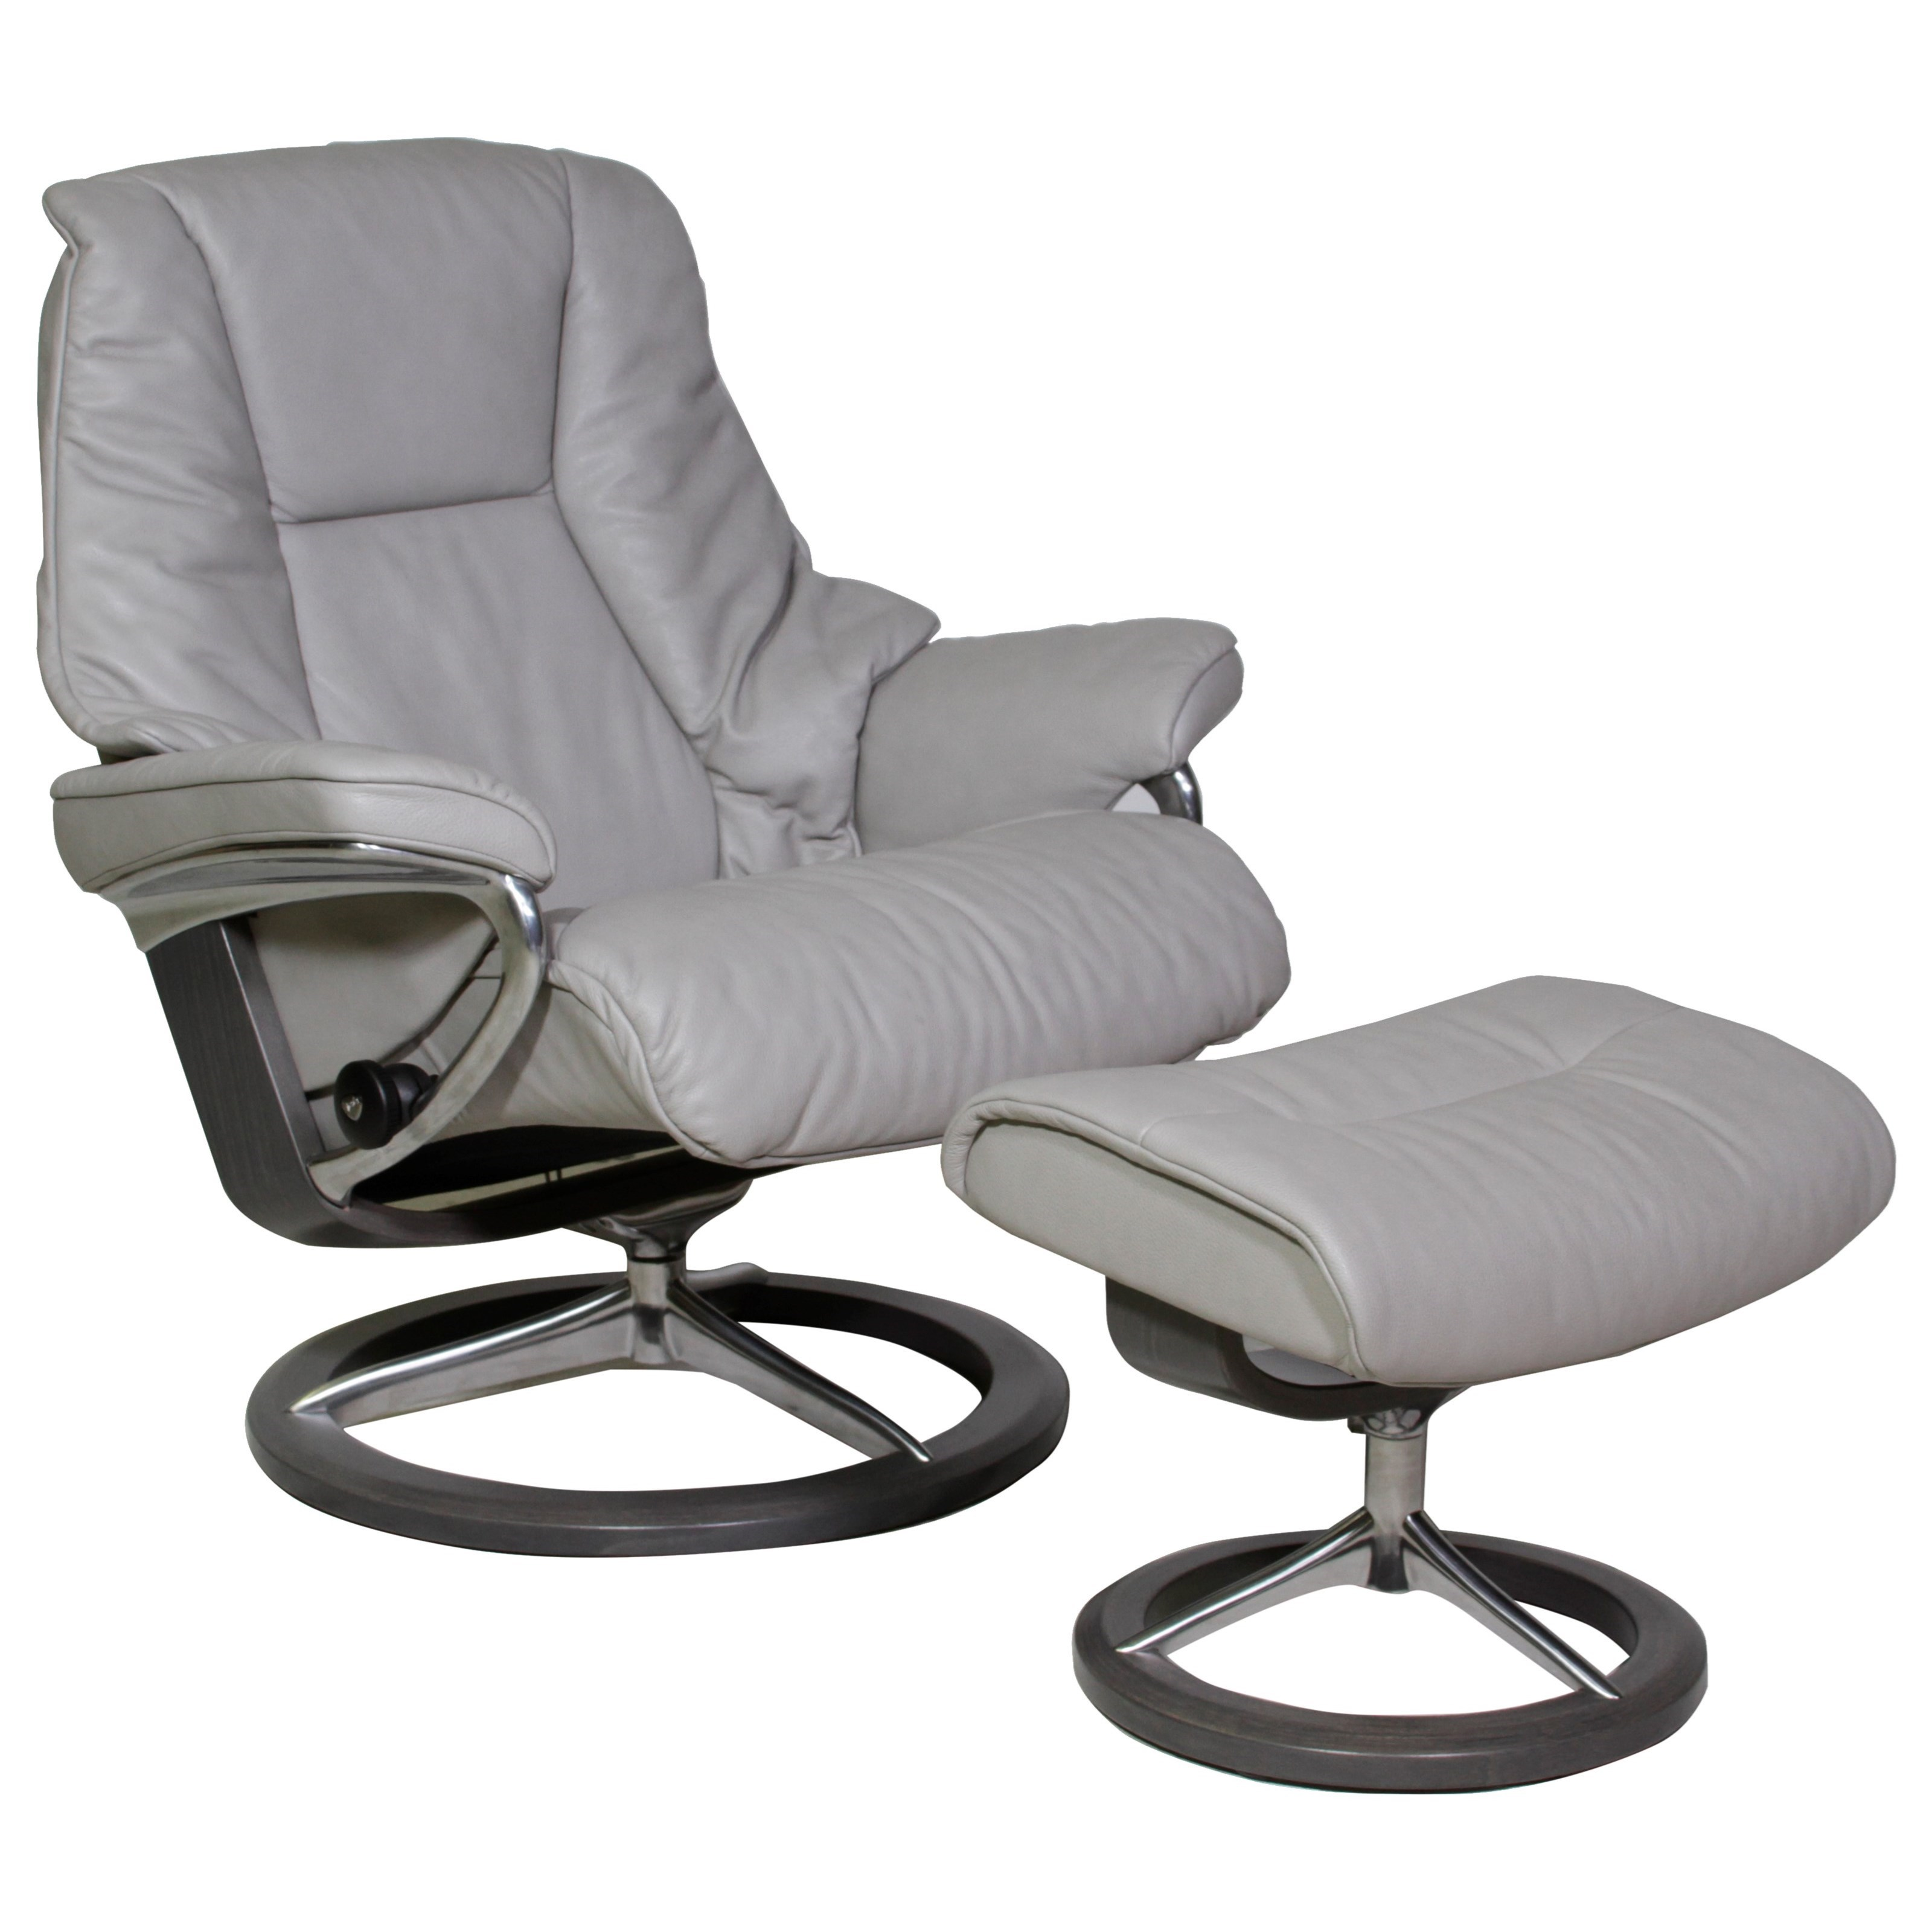 Stressless Sofa Adjustment Stressless Live Large Reclining Chair And Ottoman With